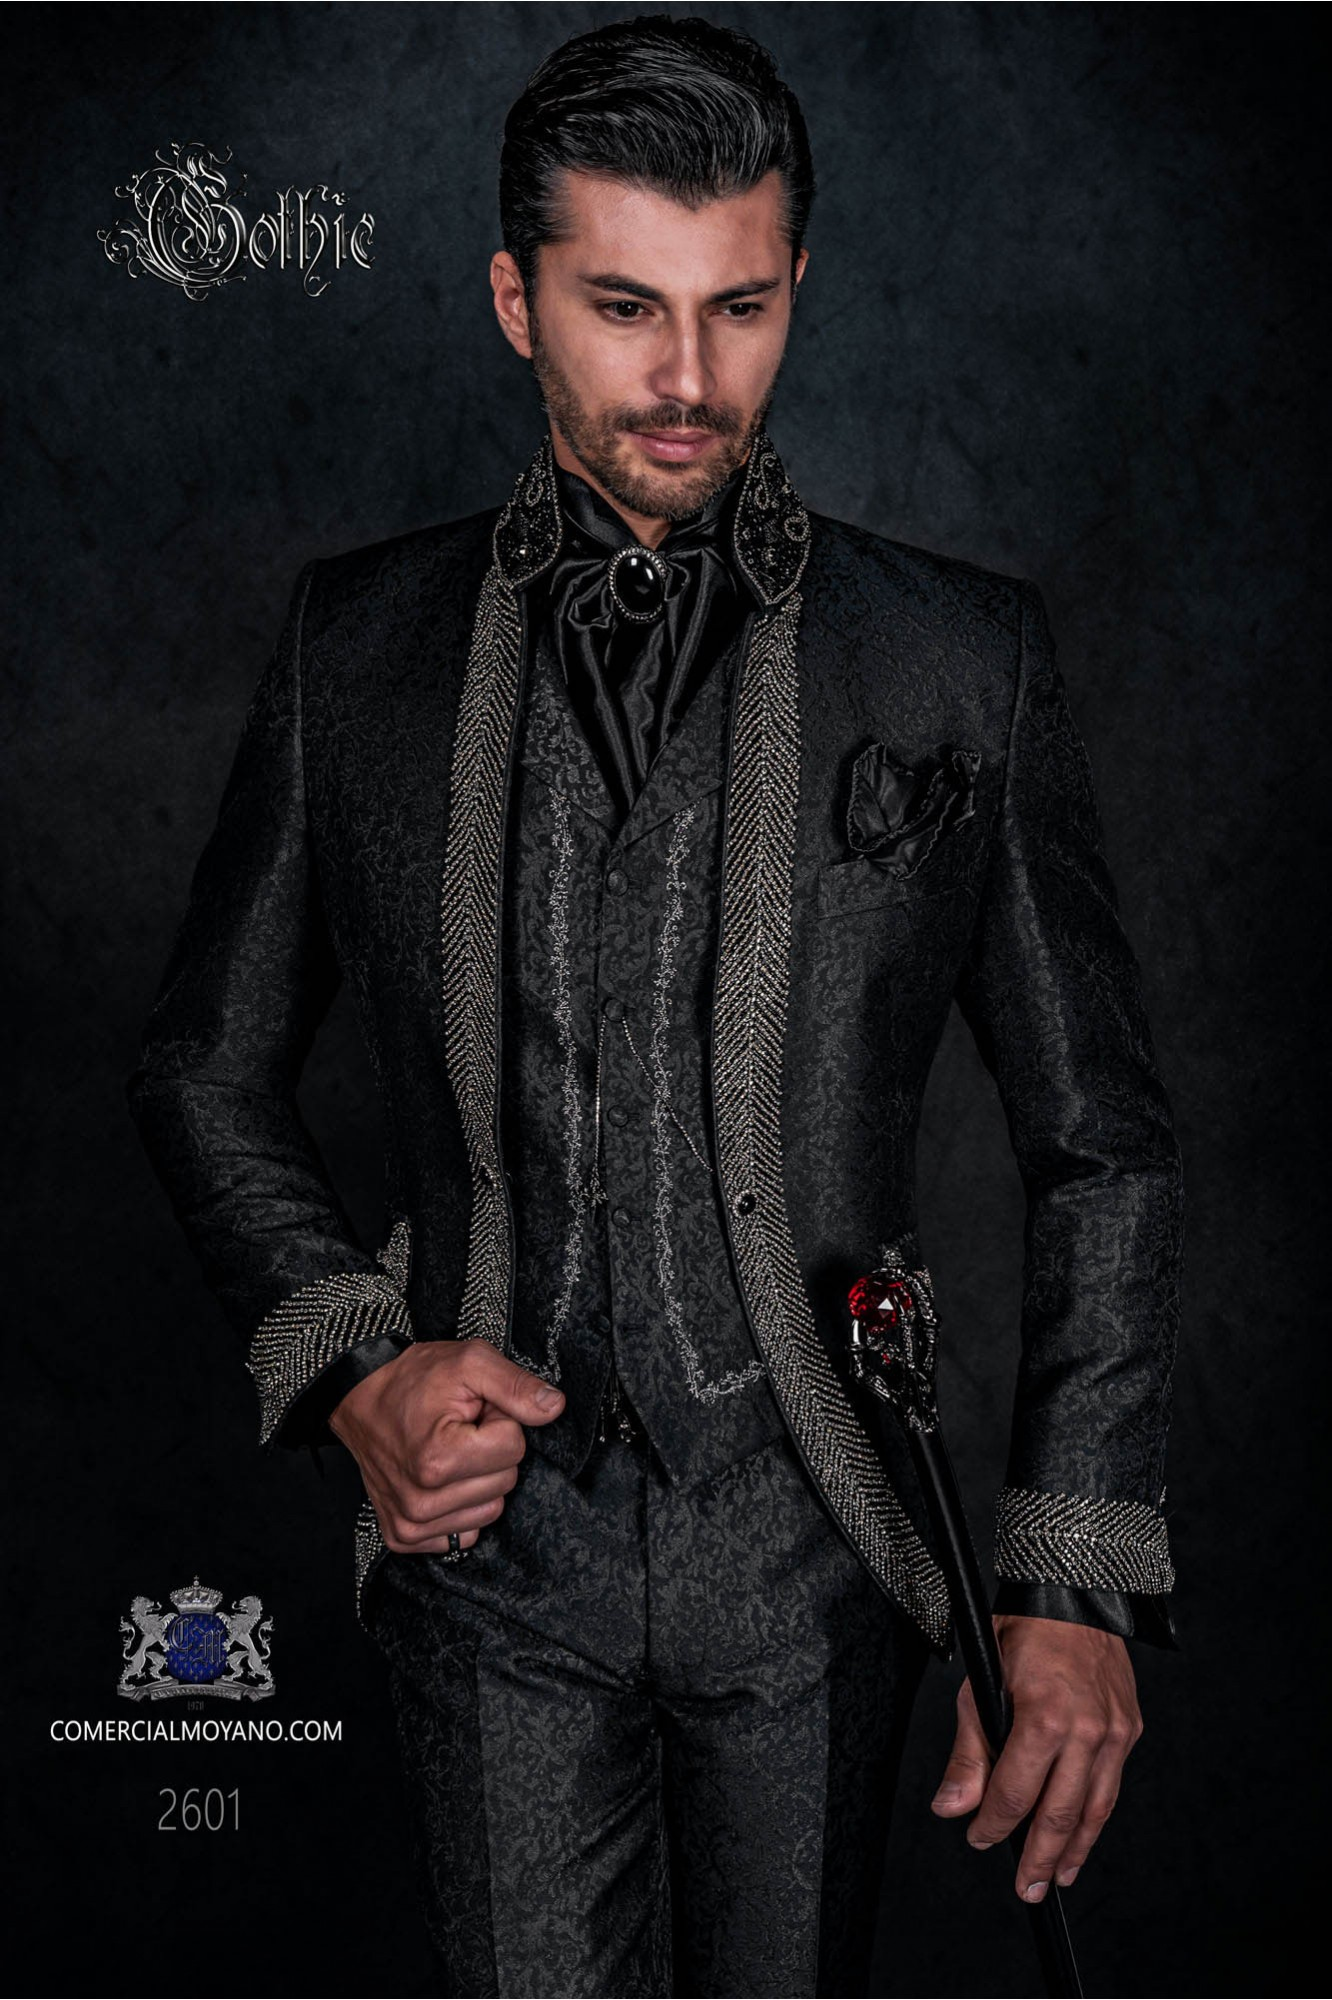 Gothic frock coat brocade black suit with Mao collar and rhinestones